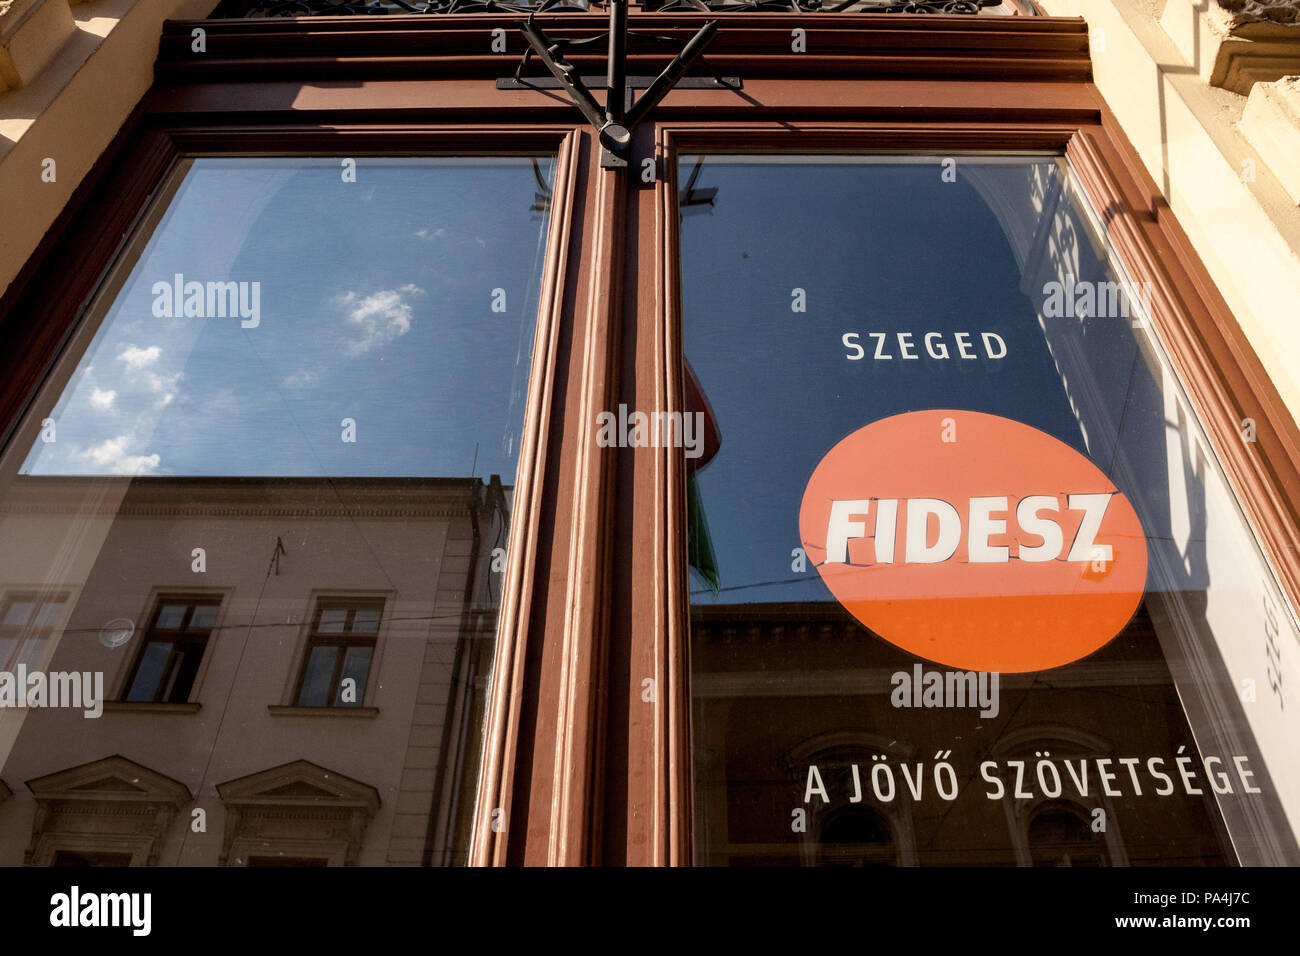 SZEGED, HUNGARY - JULY 3, 2018: Local HQ of Fidesz political party. Fidesz is the political party of the Hungarian PM, Viktor Orban, known for his pop - Stock Image